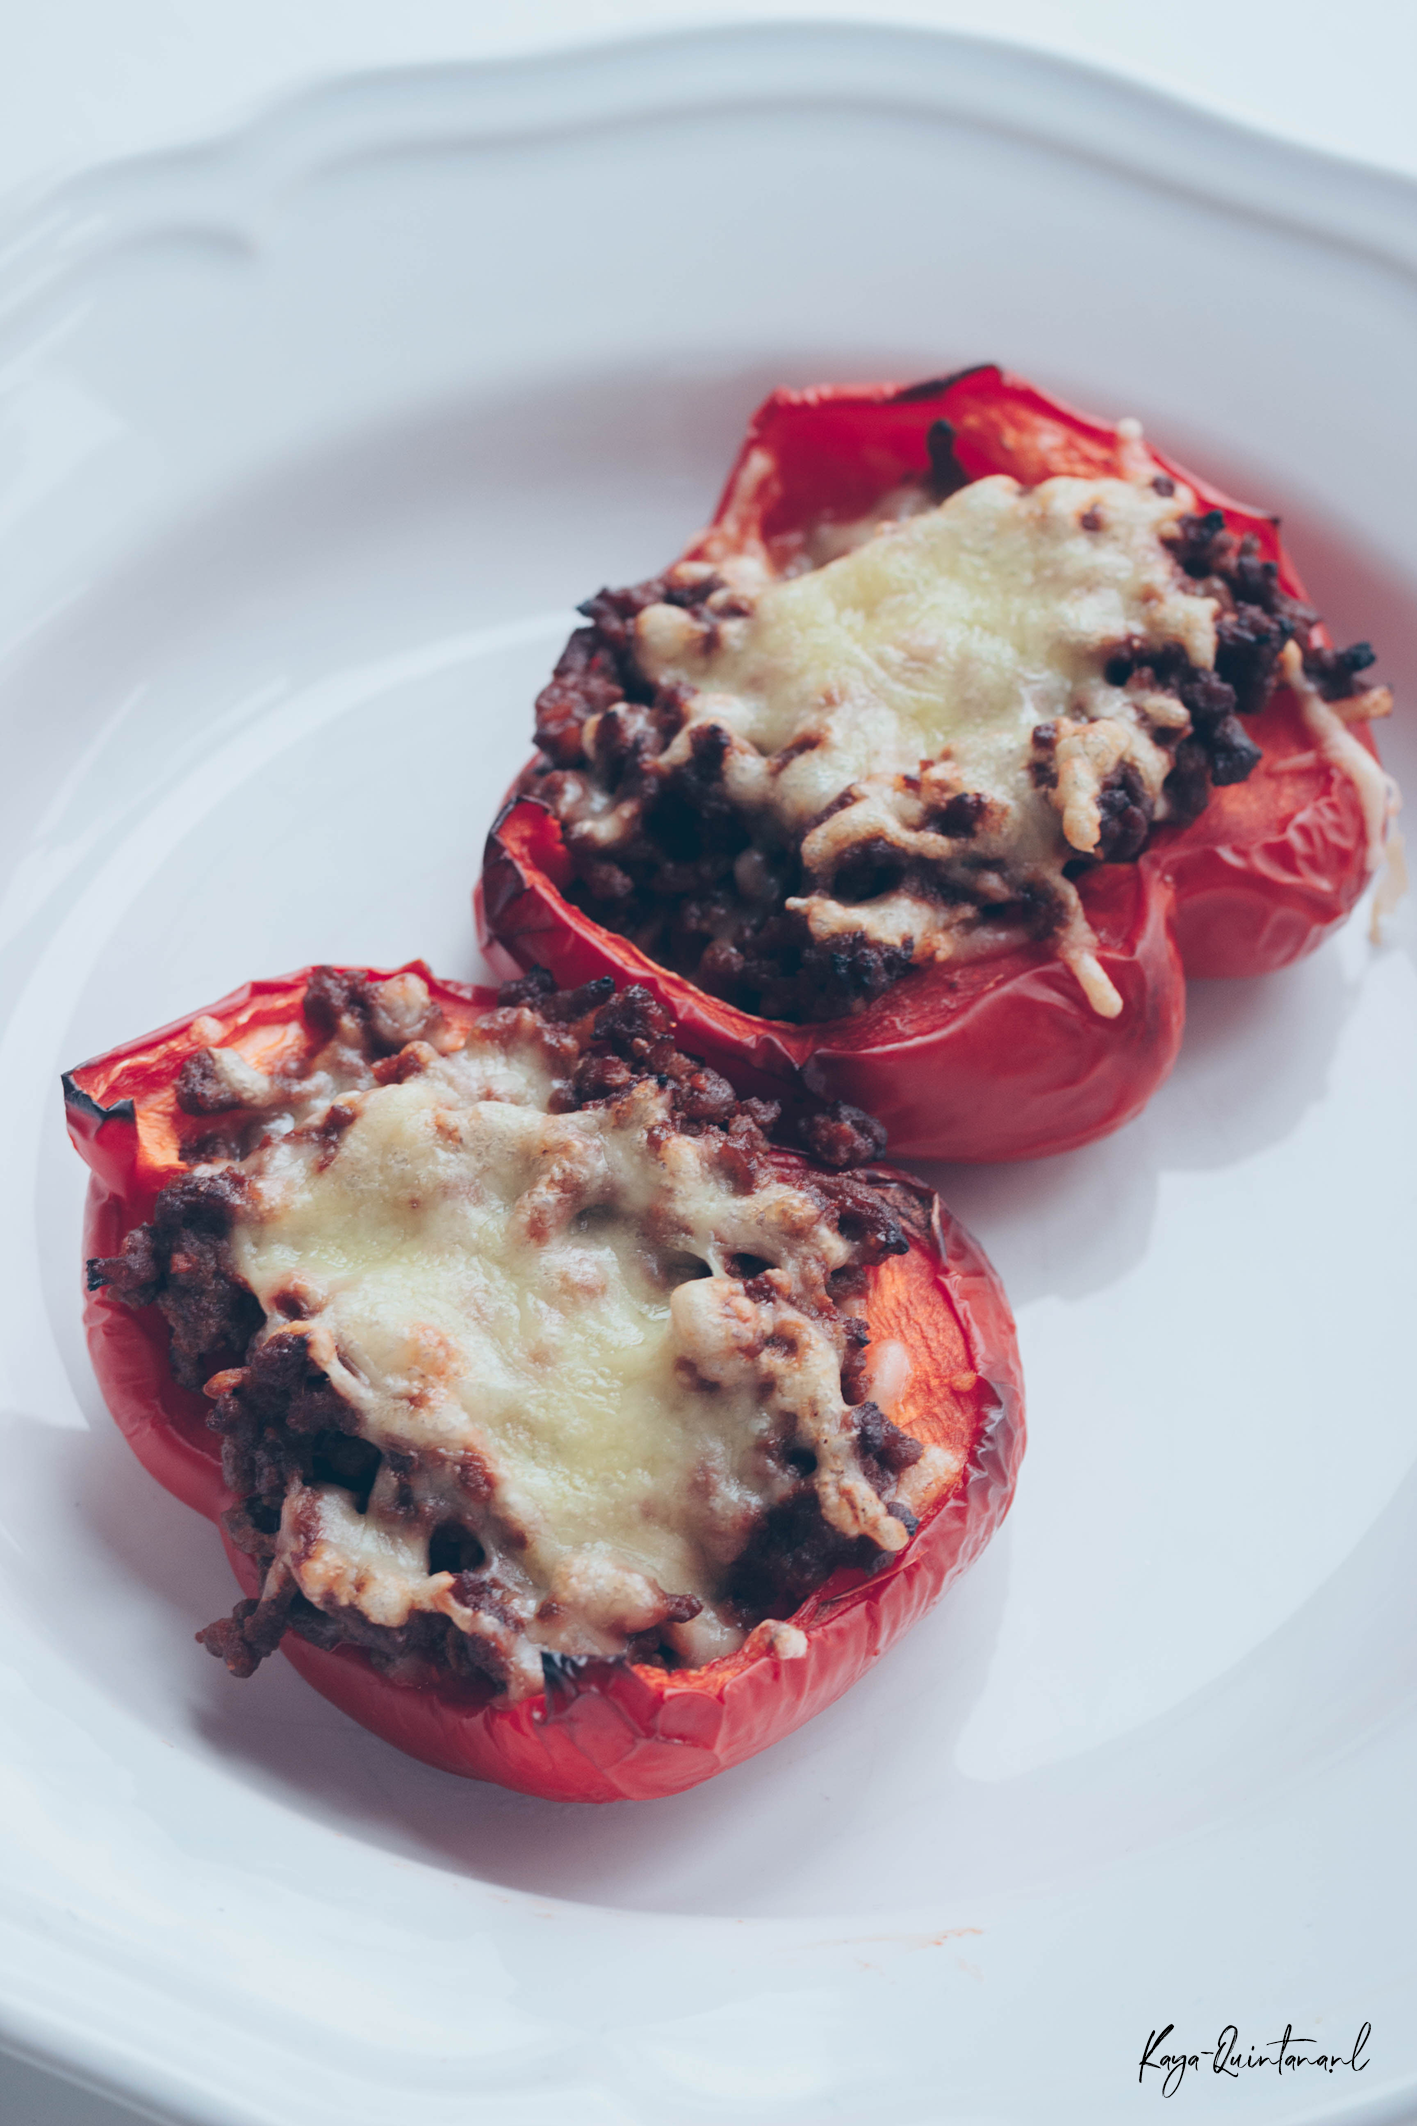 stuffed low carb and keto stuffed bell peppers